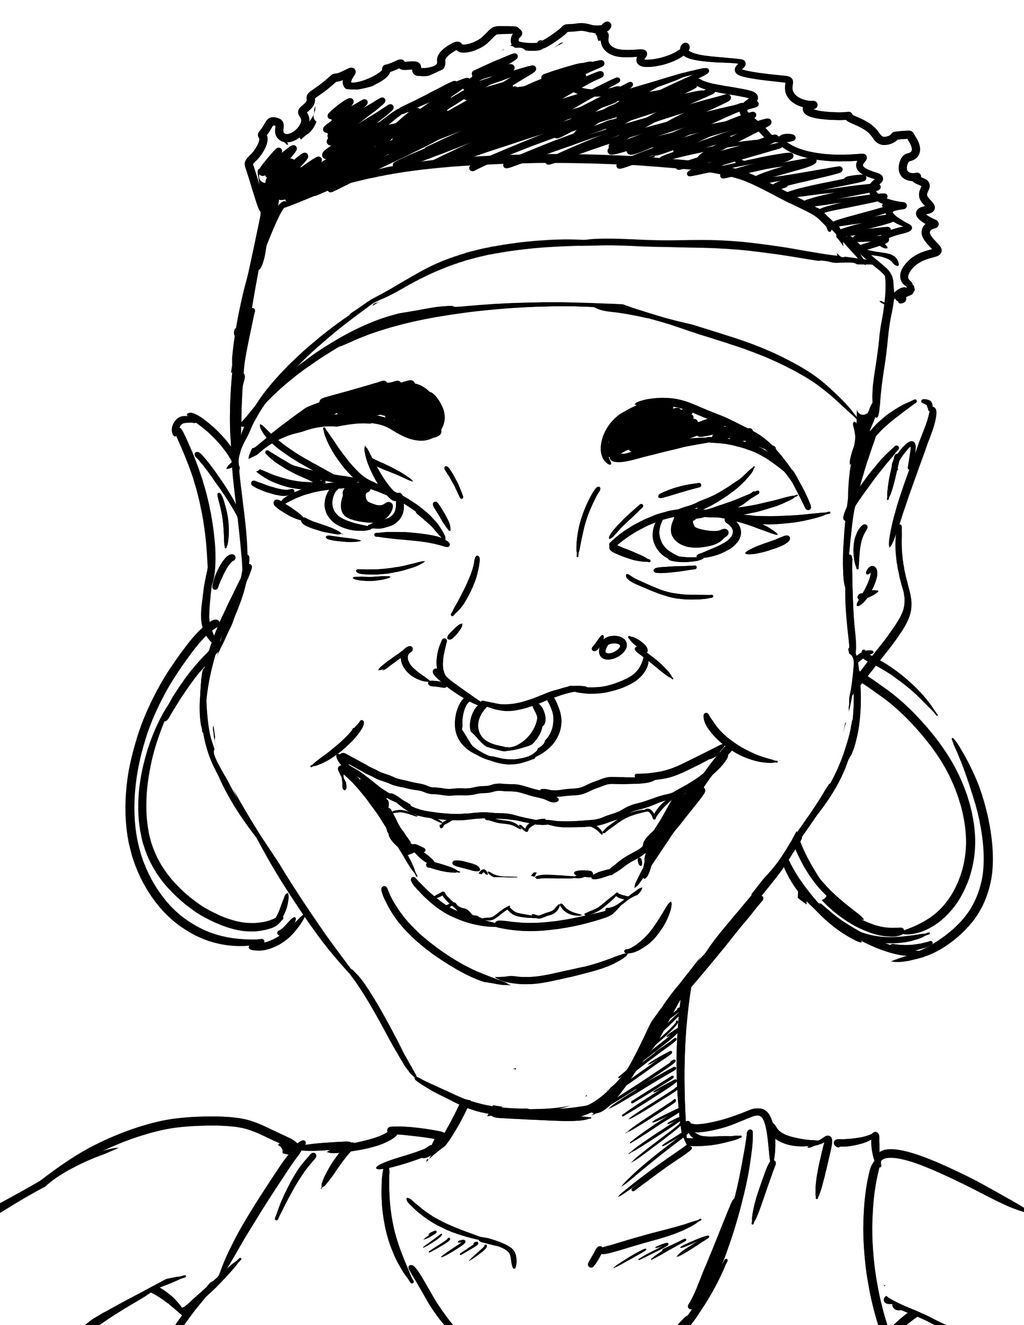 A few caricatures